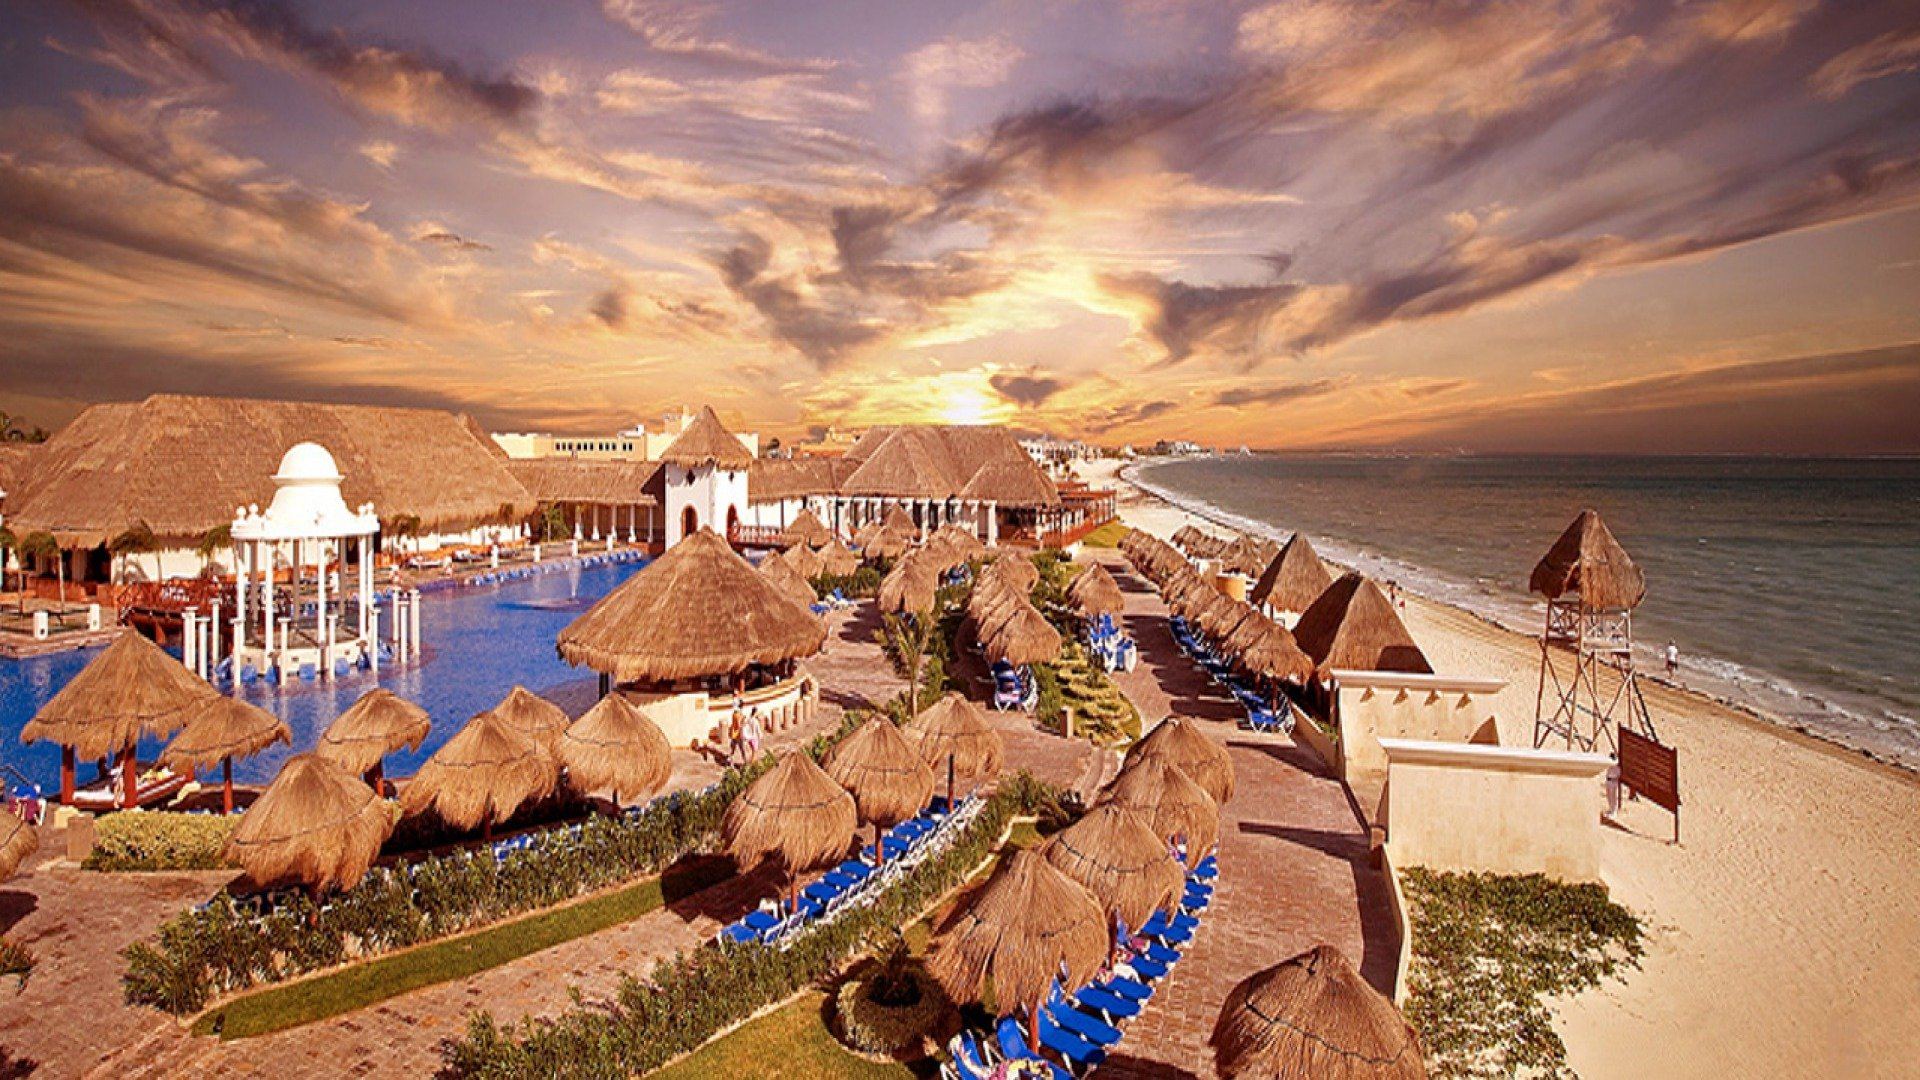 Cancun Wallpapers Hd For Desktop Backgrounds